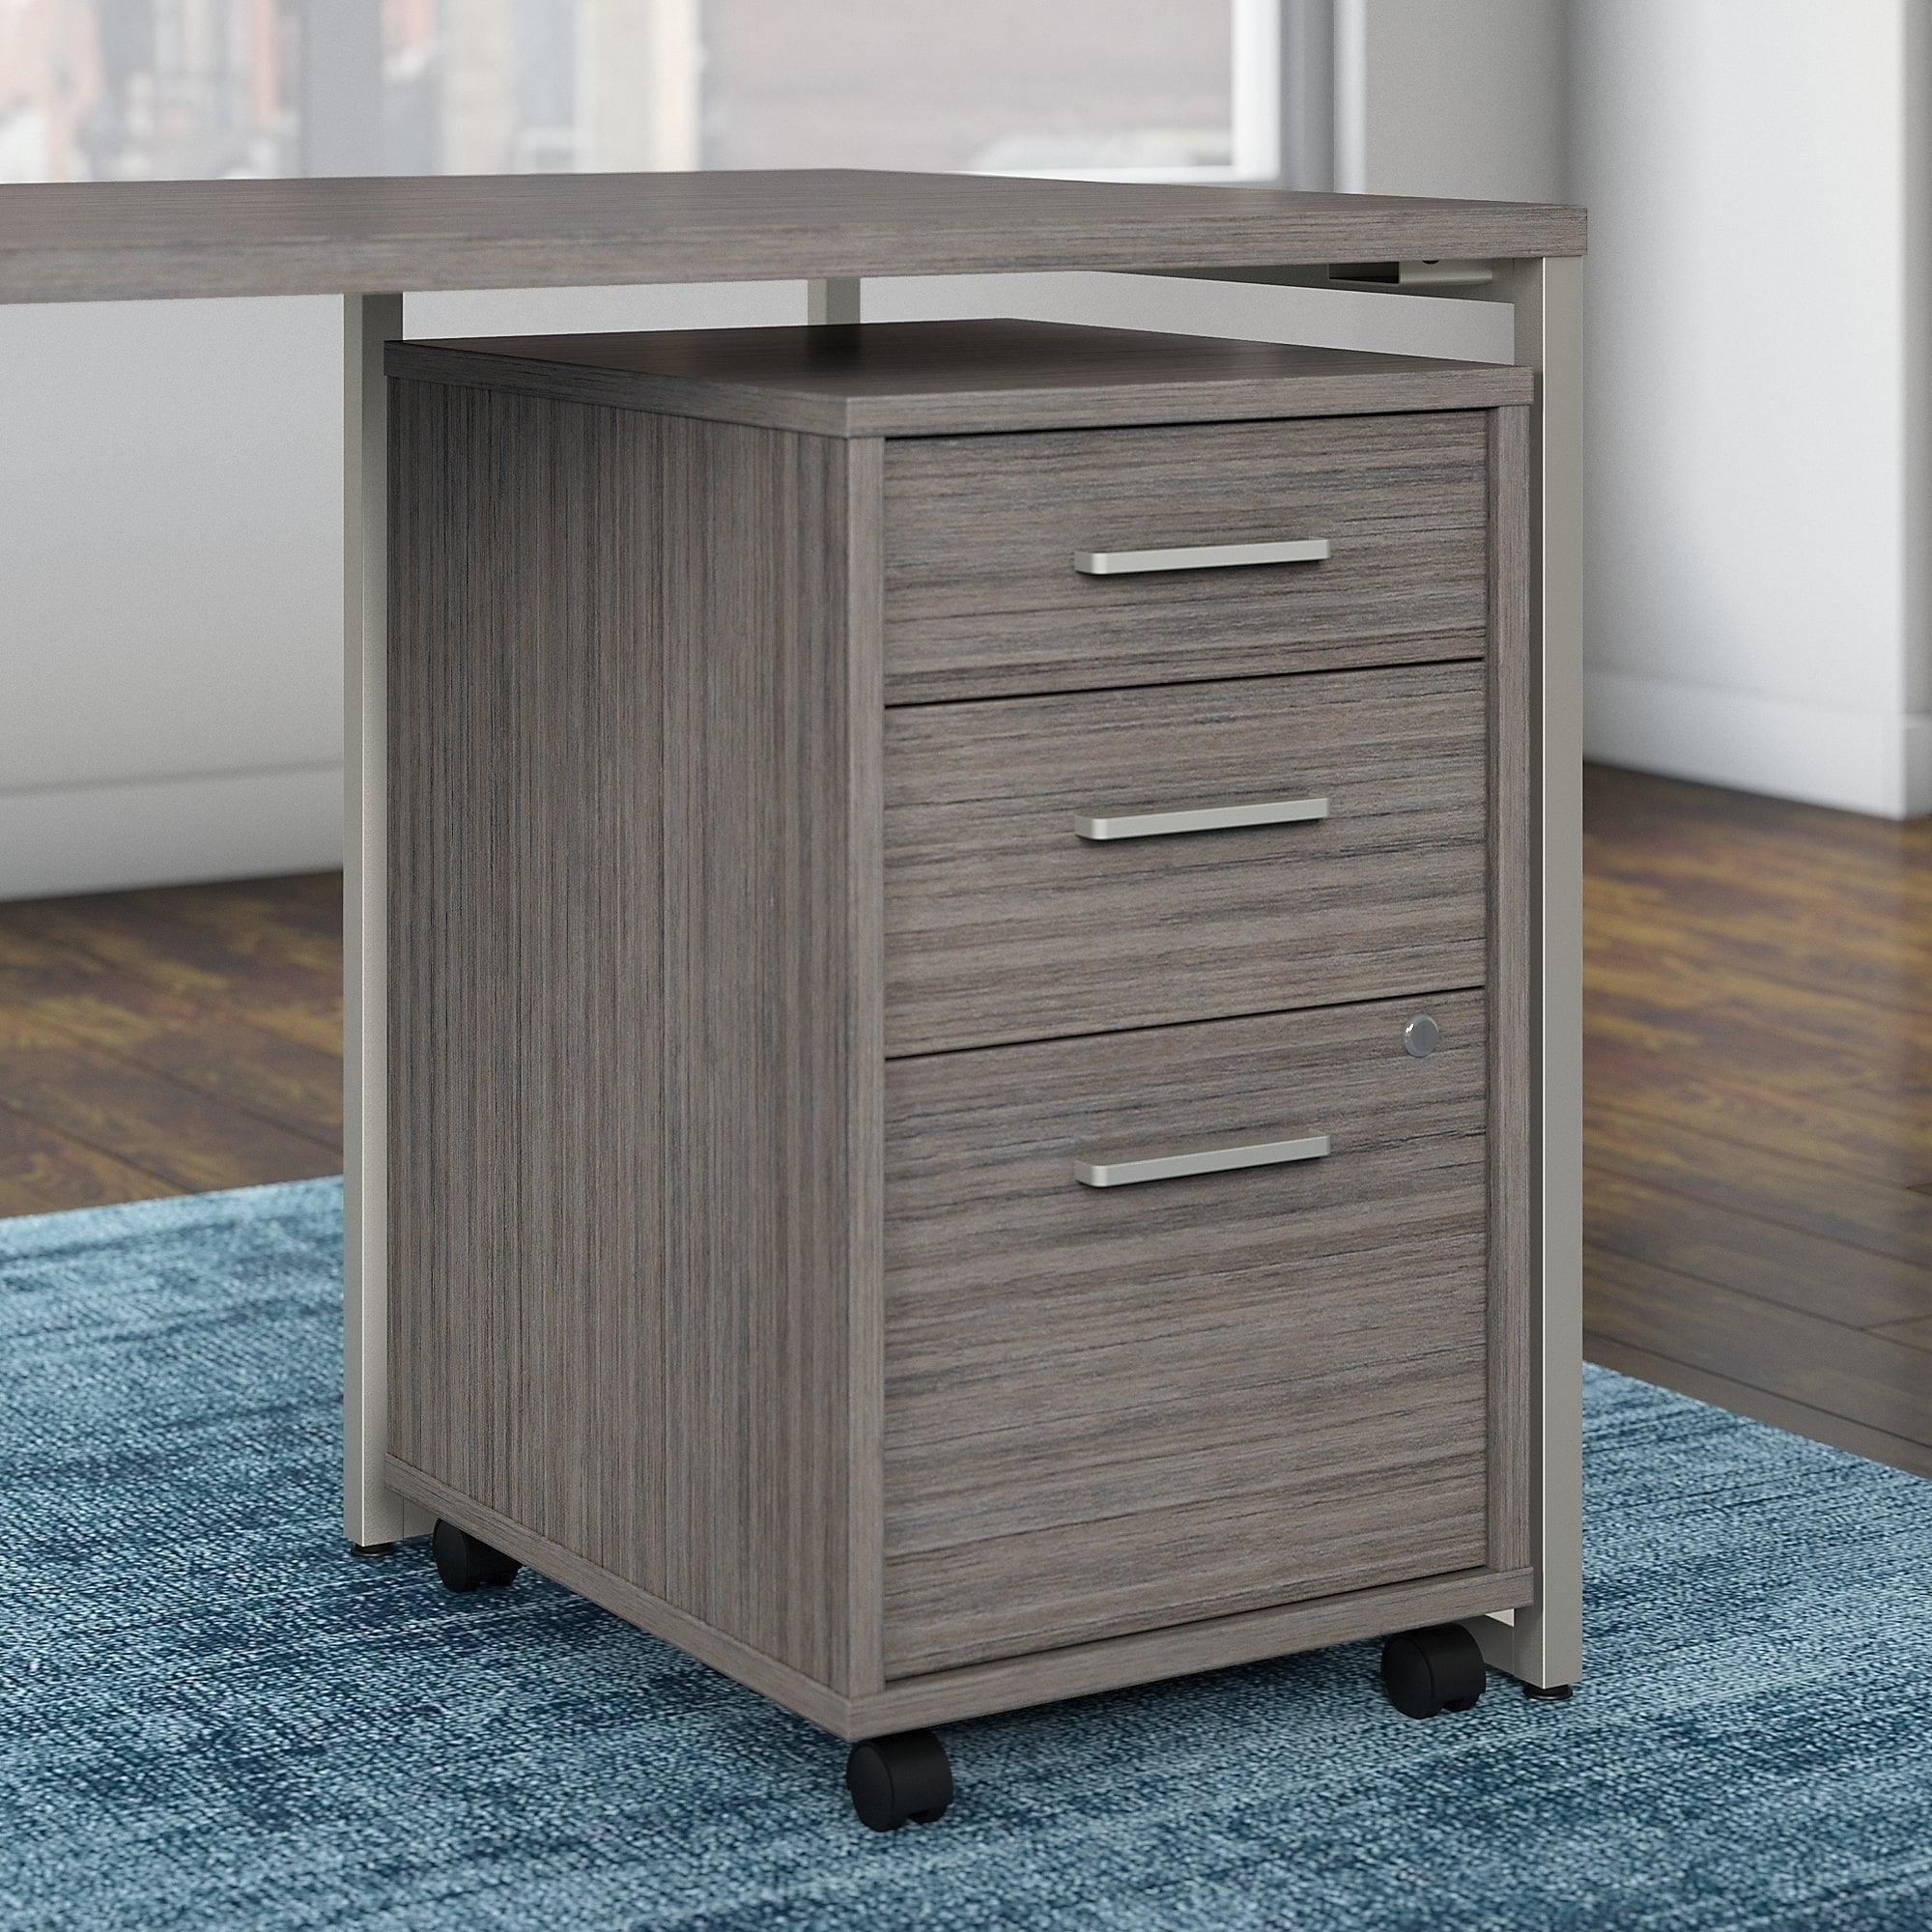 Shop office by kathy ireland method 3 drawer mobile file cabinet assembled free shipping today overstock com 17994596